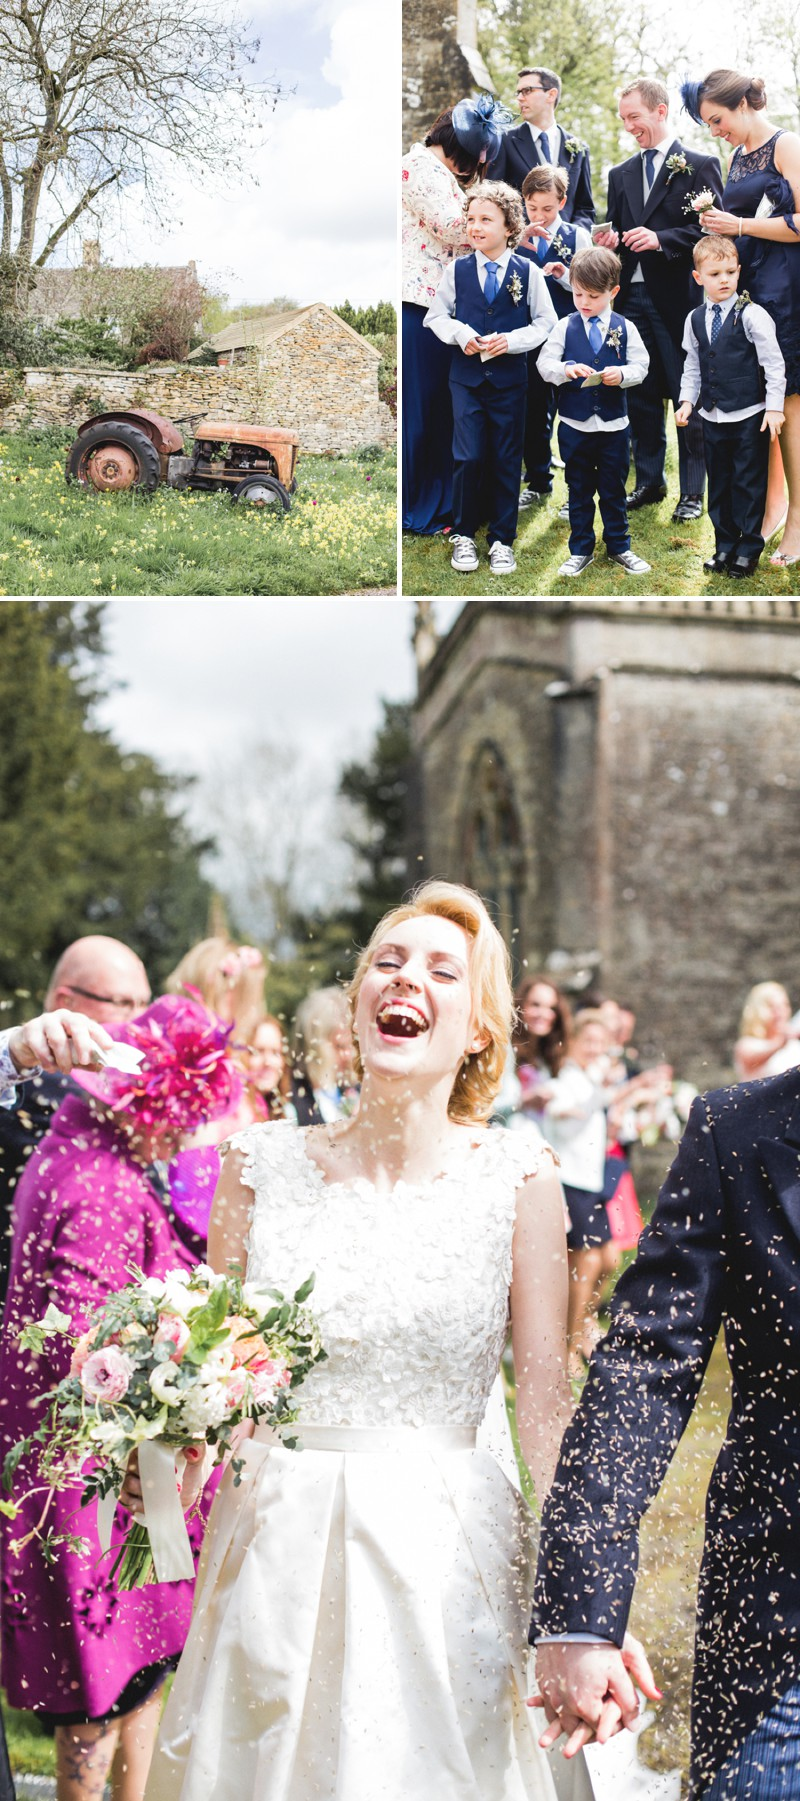 An Elegant English Wedding At The Matara Centre In The Cotswolds With A Bespoke Jenny Lessin Wedding Skirt and Top And Hot Pink Bridesmaid Dresses And A Gin And Tonic Cocktail Bar By M&J Photography._0005